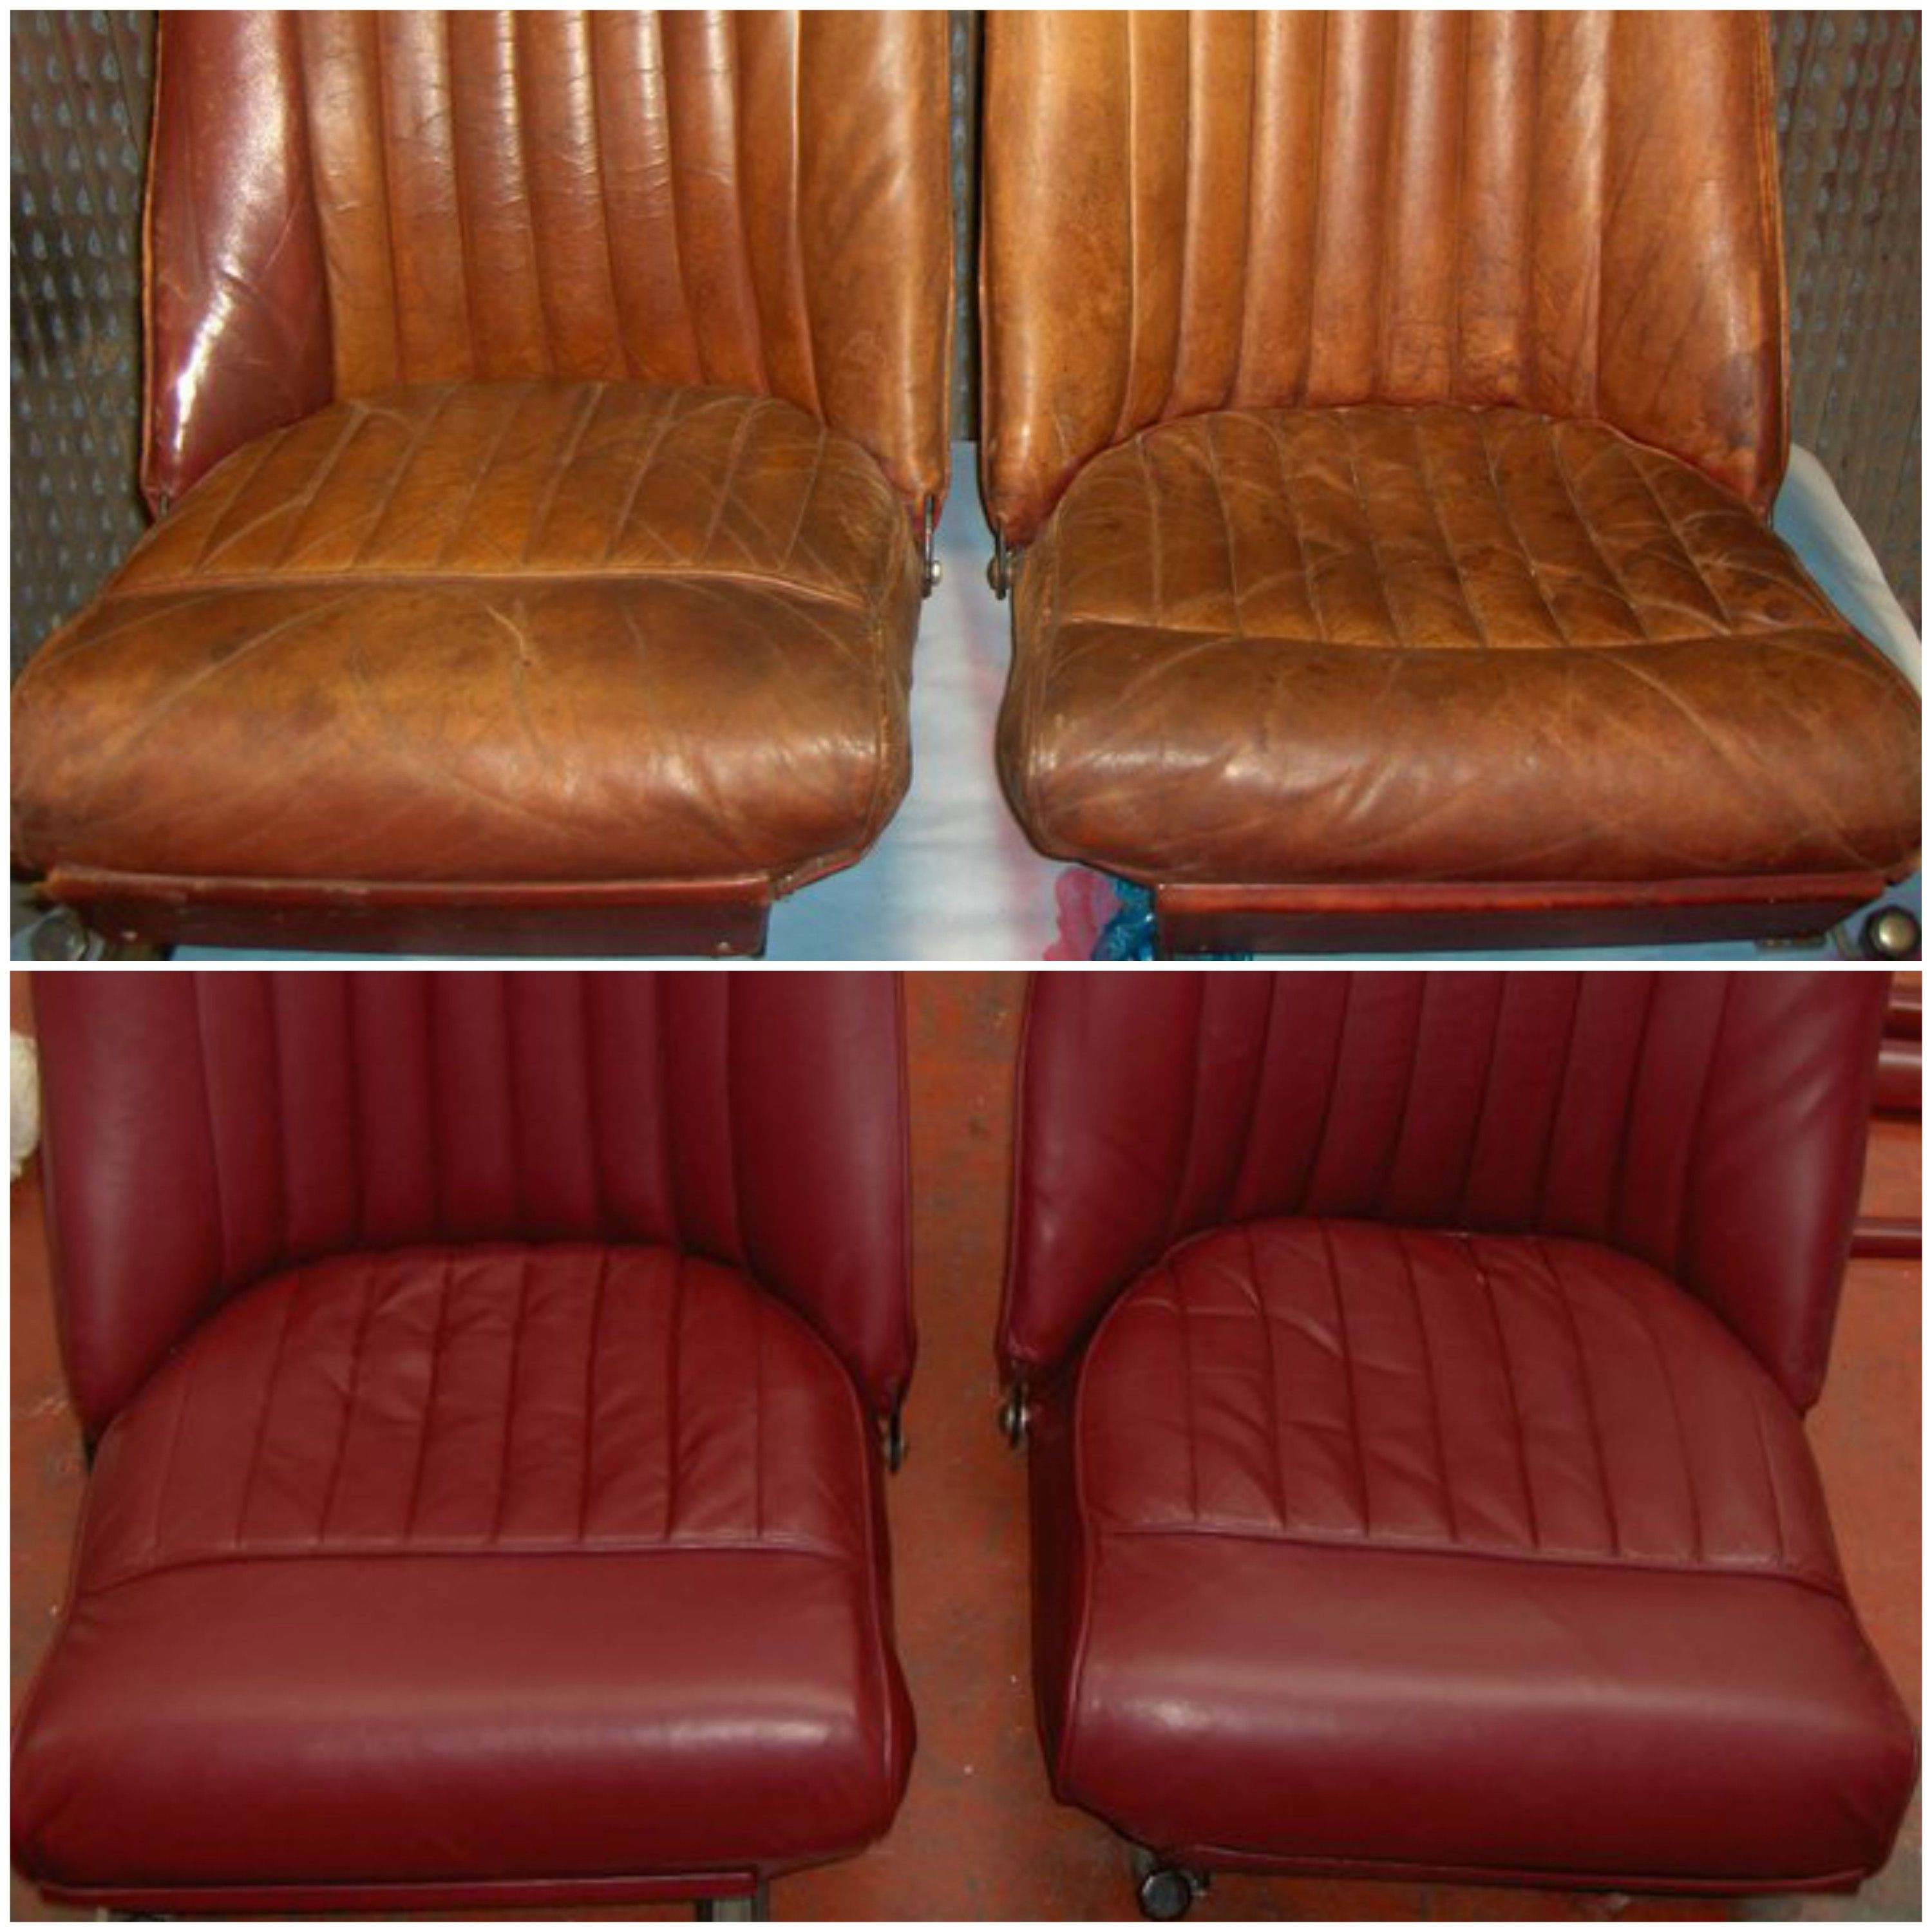 Restoring Leather Sofa Colour Sealy Replacement Cushions How To Restore Faded Car Seats The Interior Of